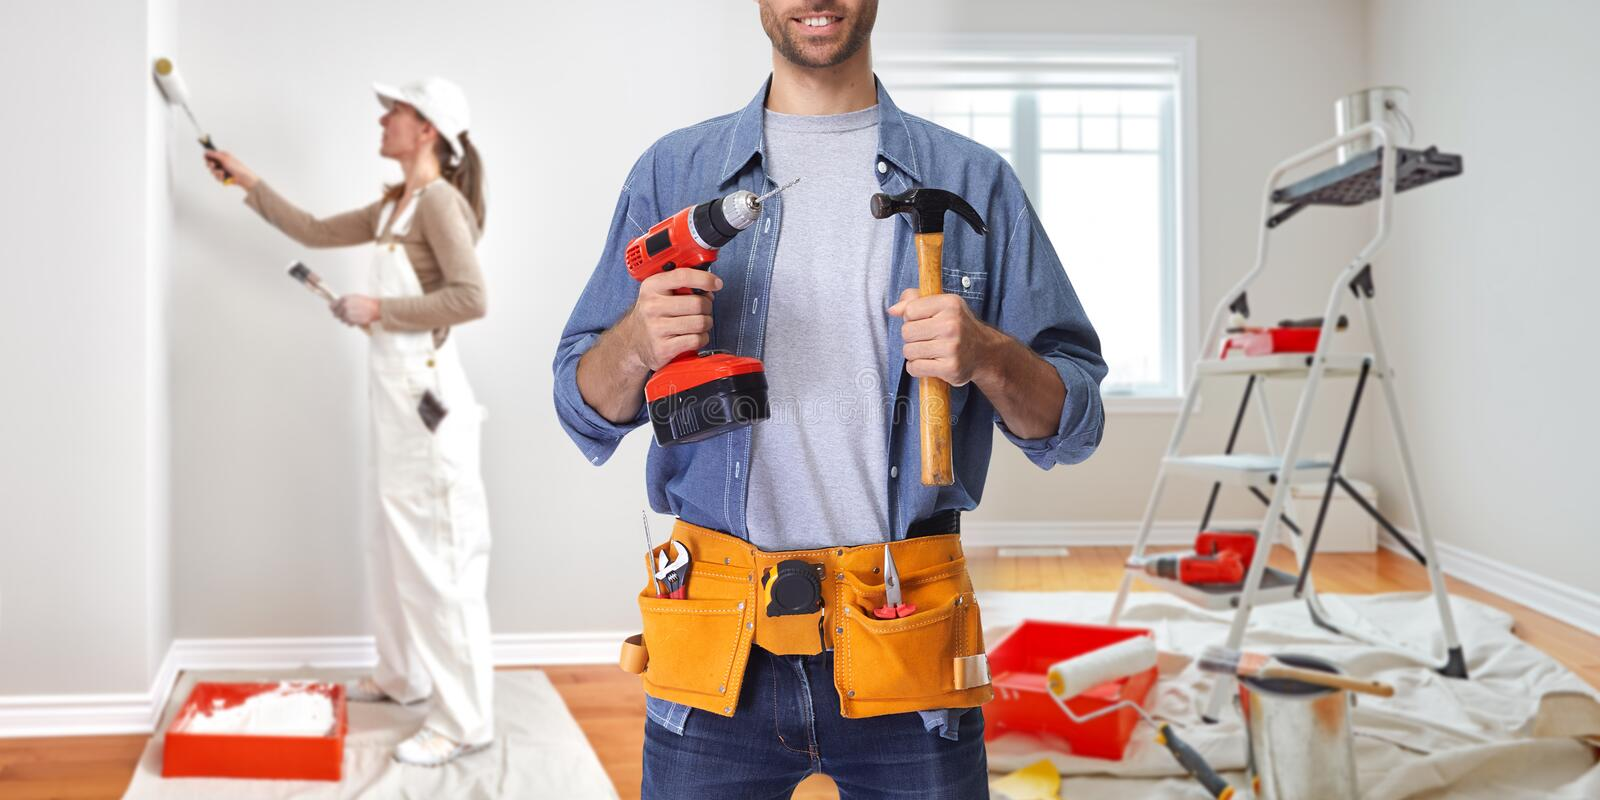 Construction worker with drill and hammer stock images